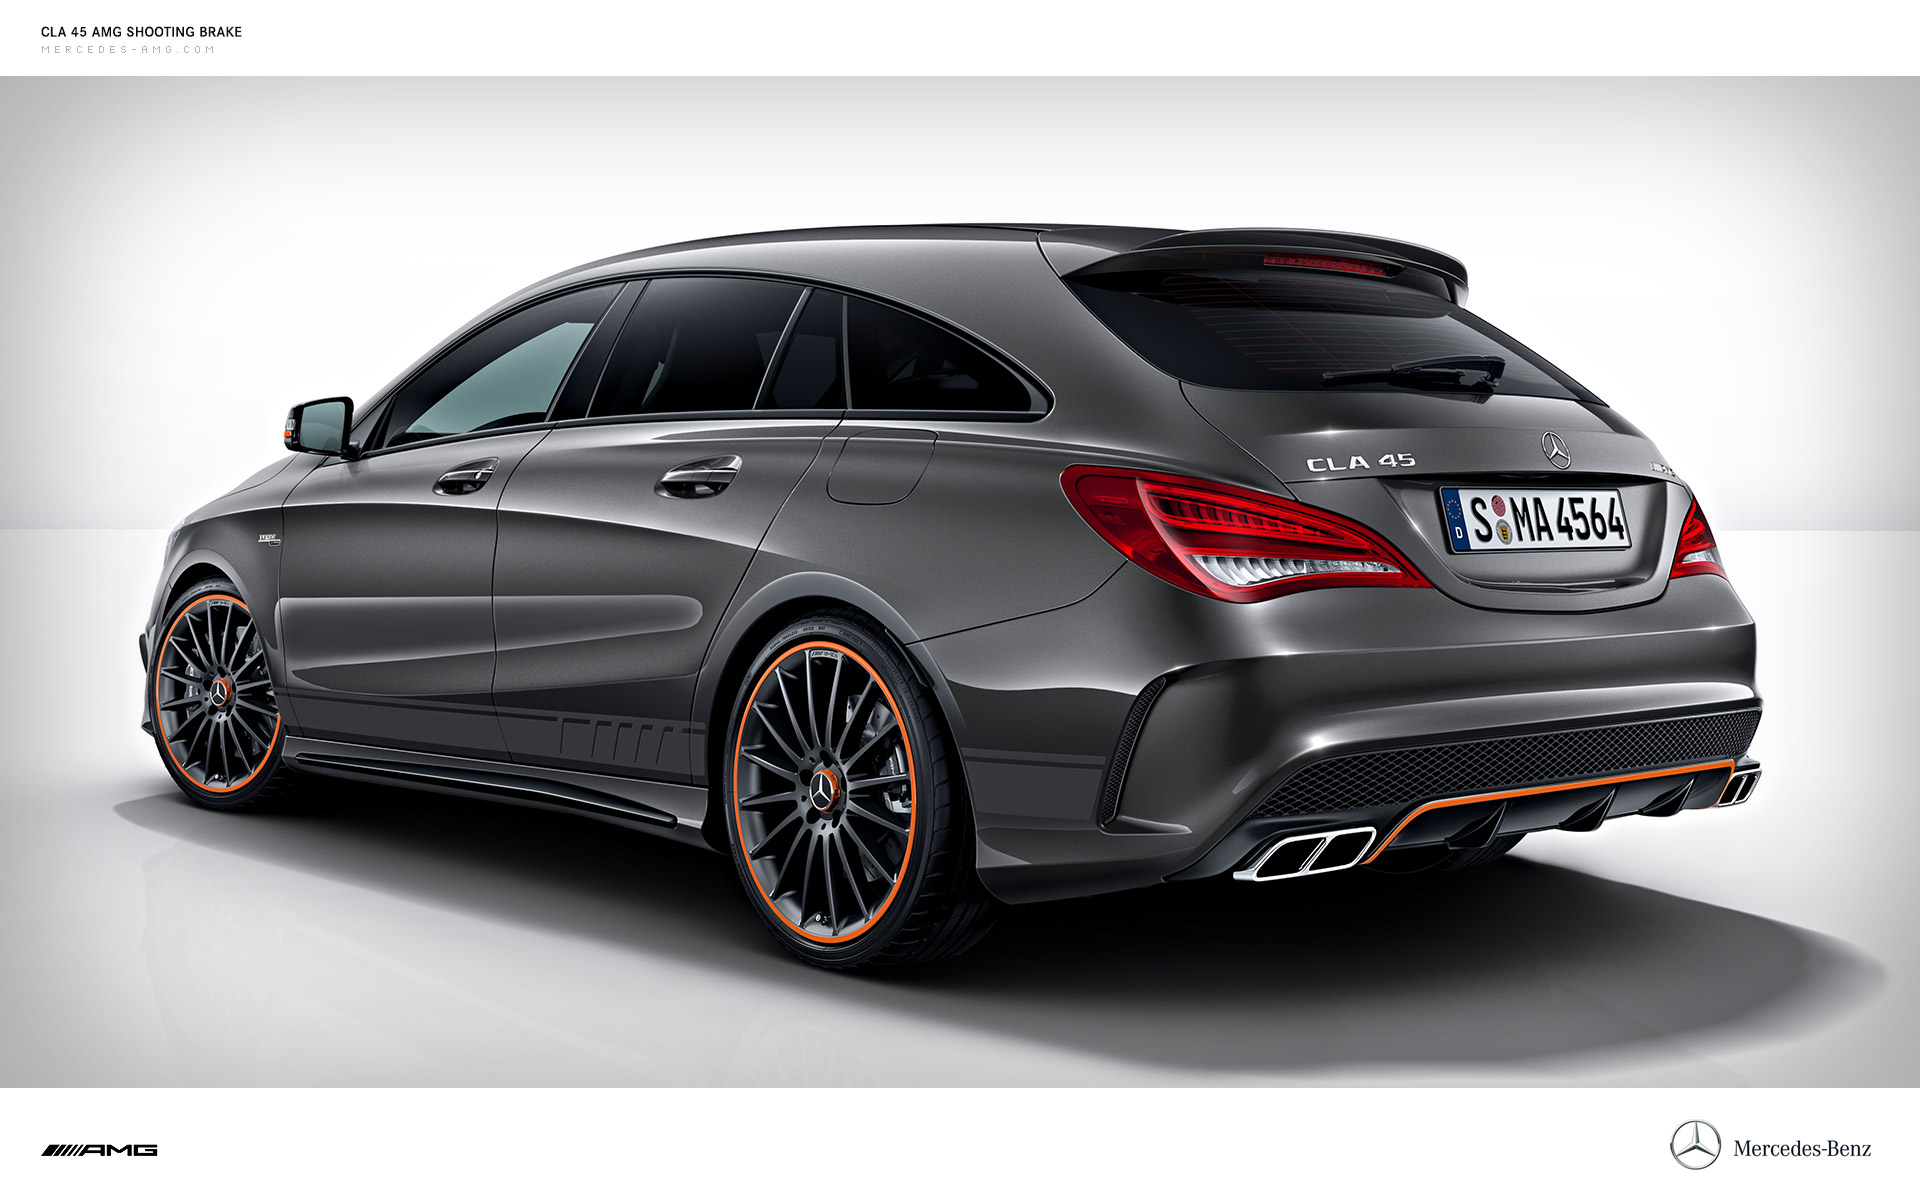 2015 mercedes benz cla 45 amg shooting brake mercedes benz. Black Bedroom Furniture Sets. Home Design Ideas